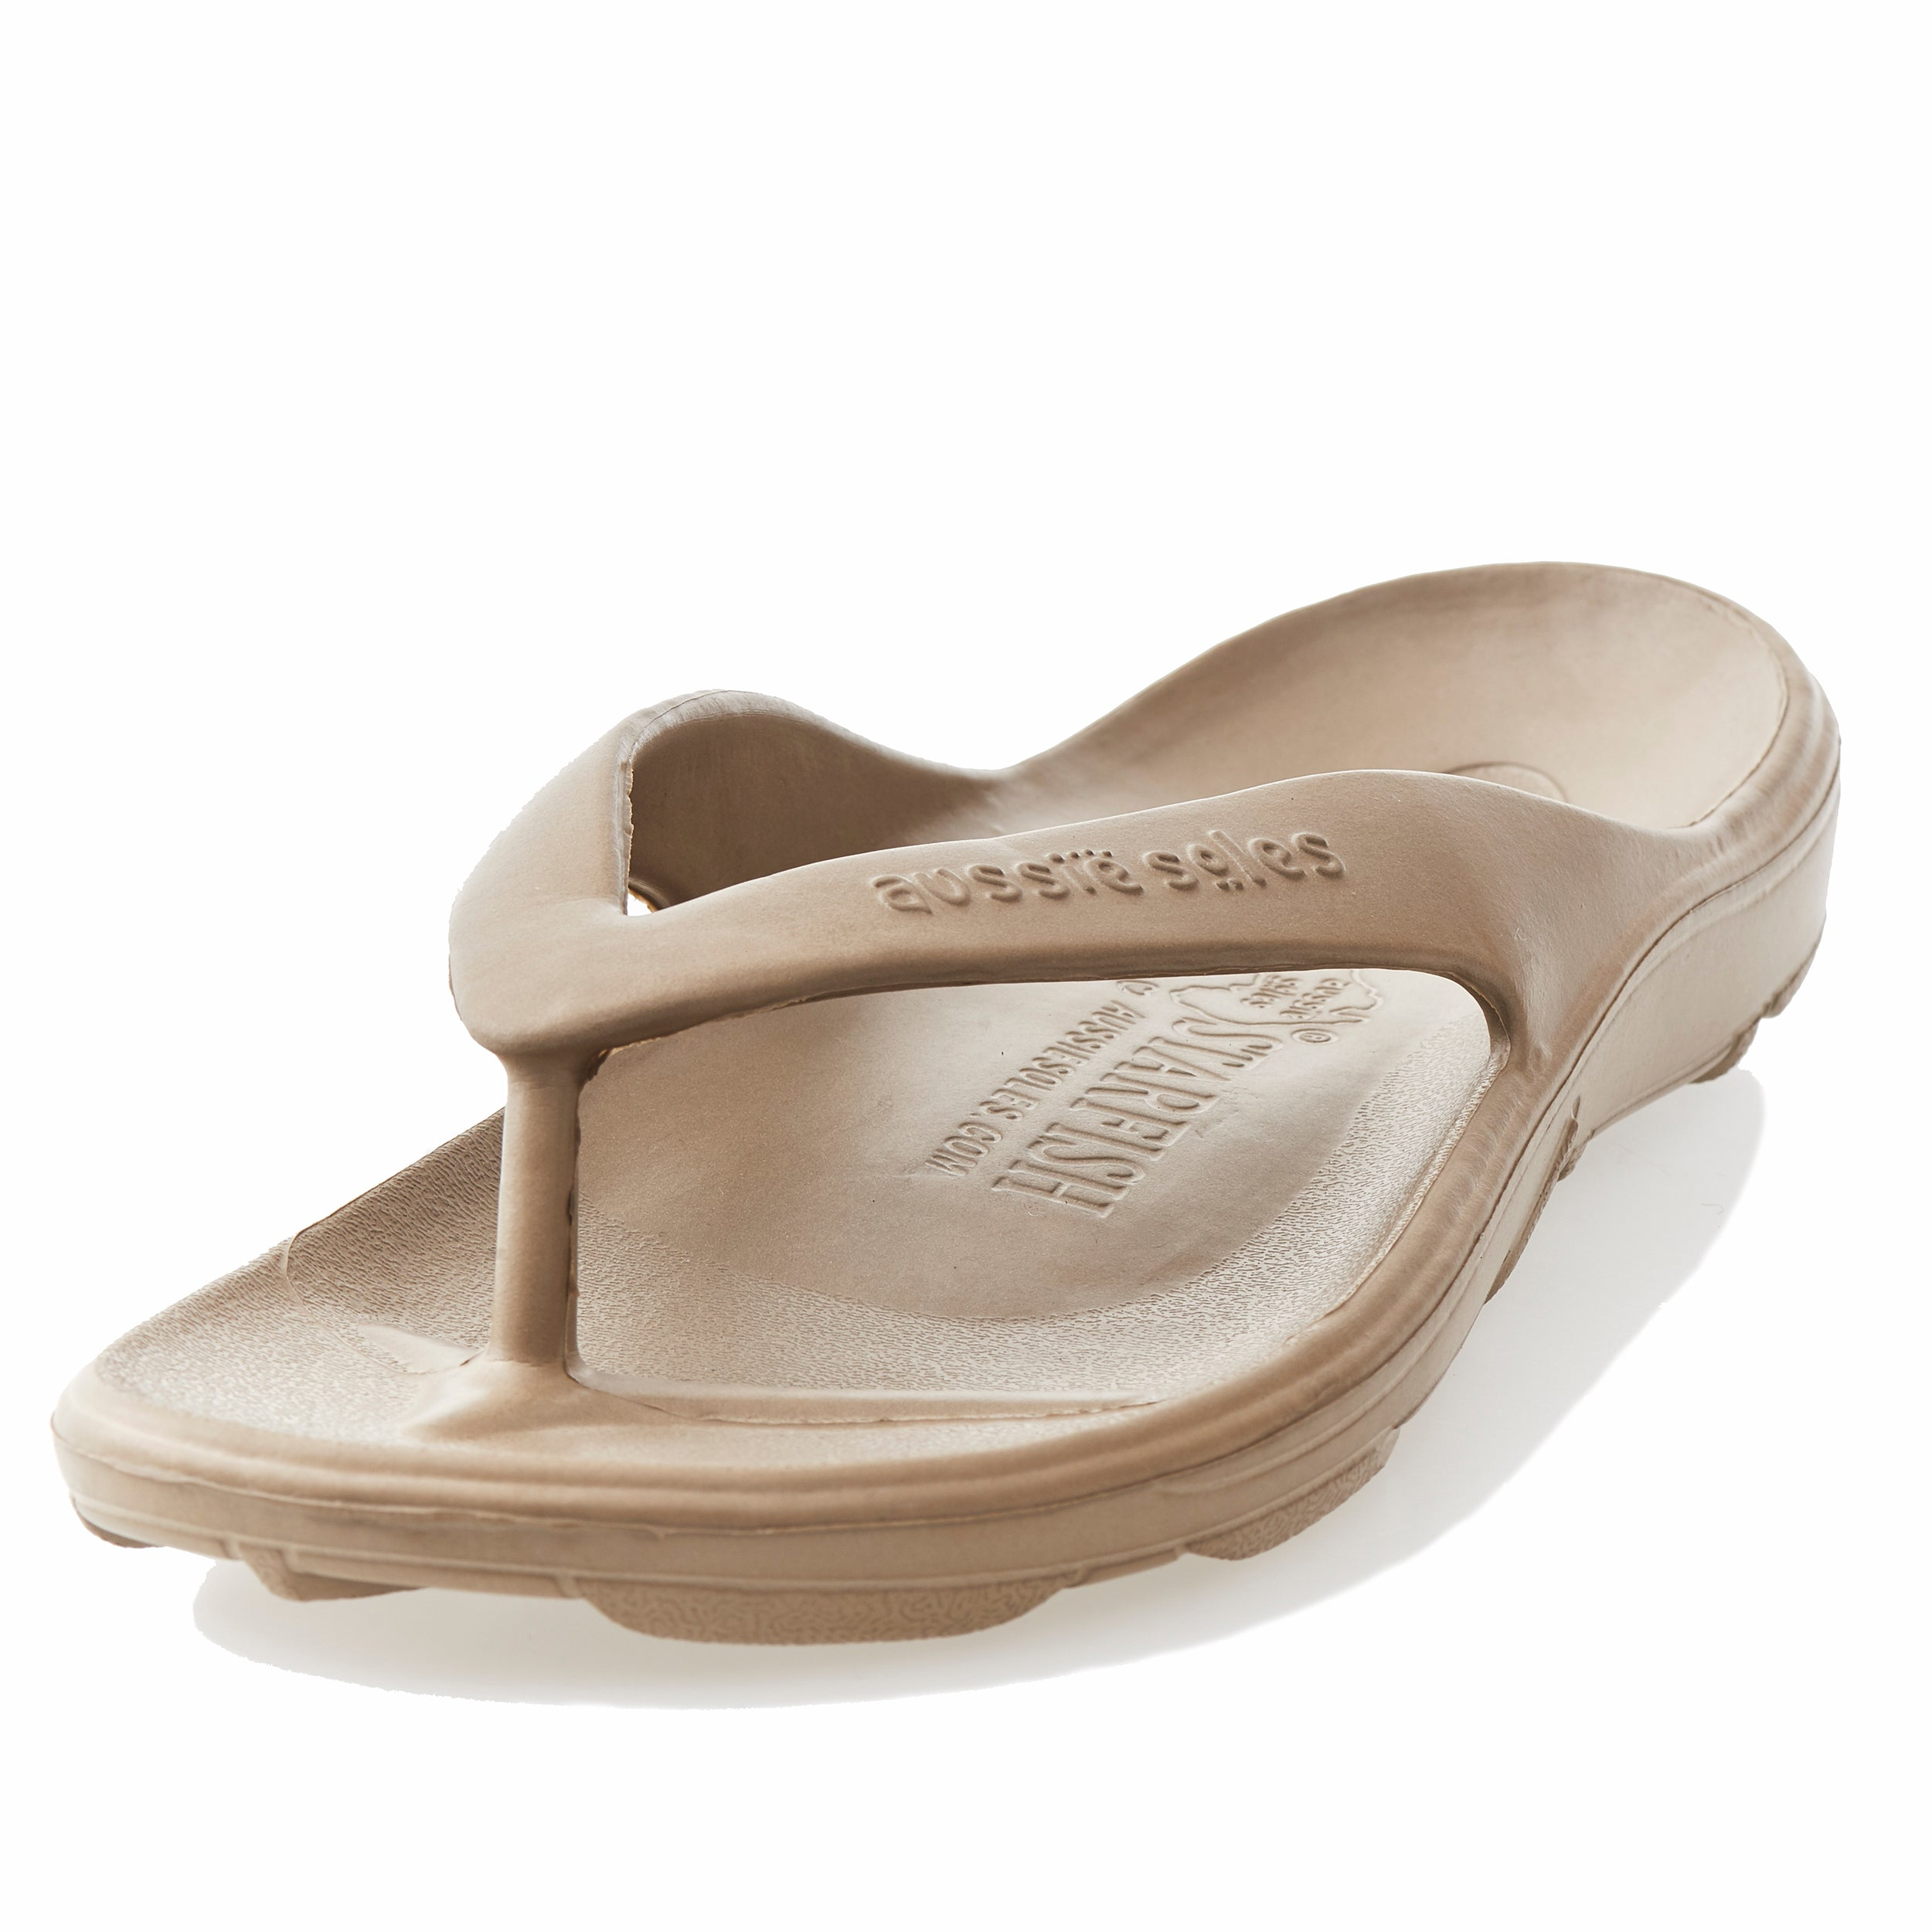 1e673359d2686 Flip-Flops With Arch Support  Aussie Soles Starfish Orthotic Sandals ...